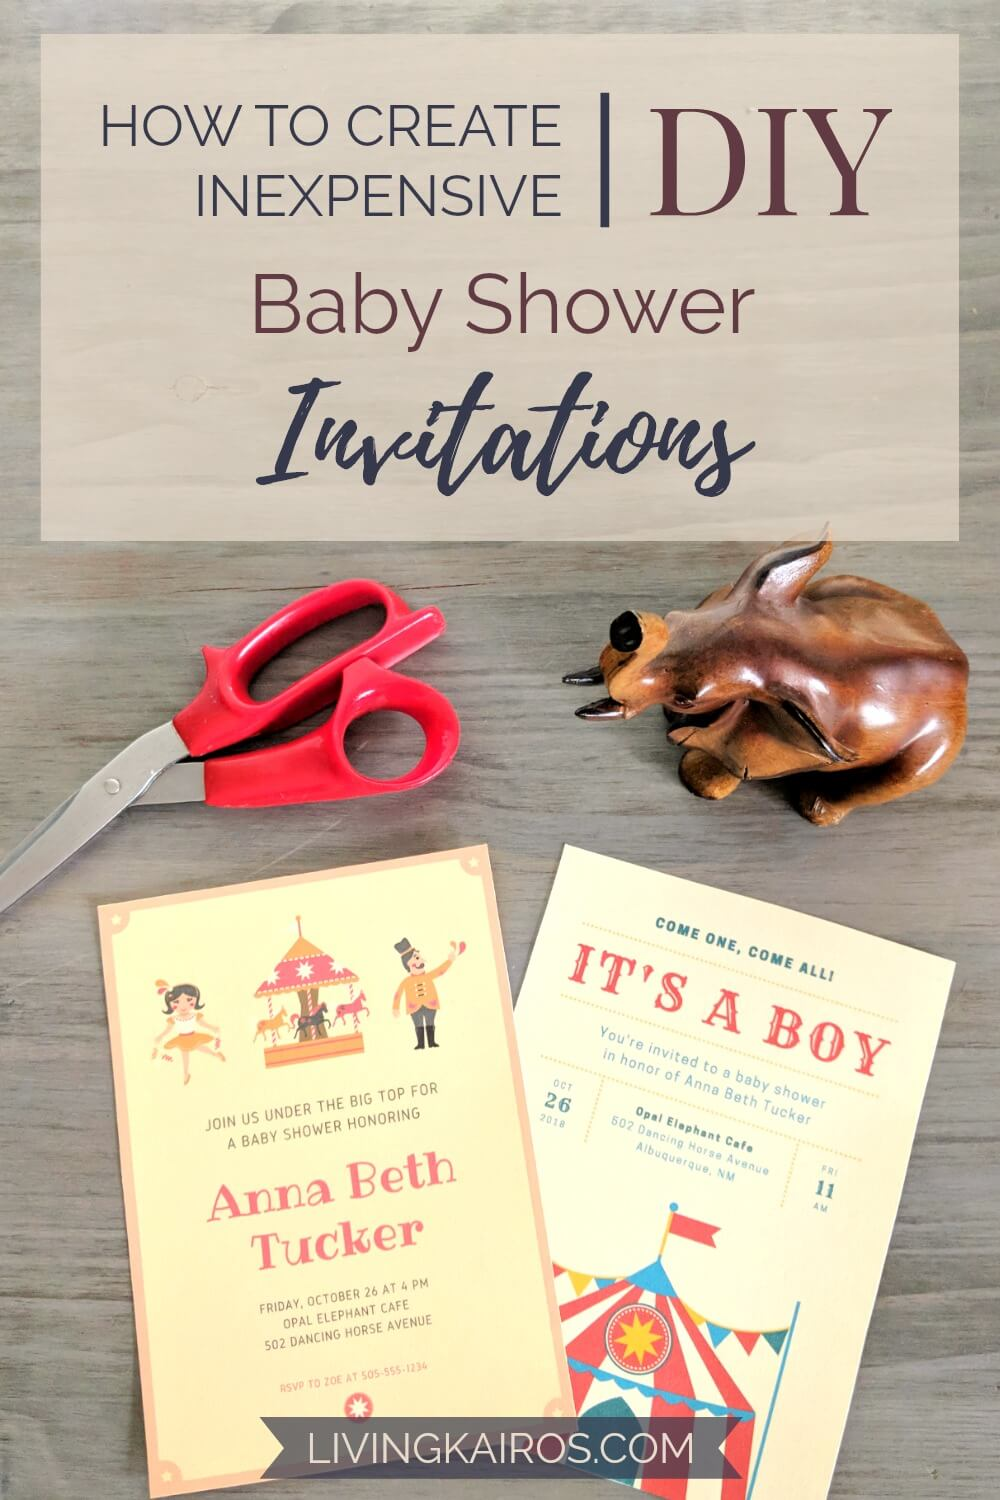 How To Create Inexpensive Diy Baby Shower Invitations Budget